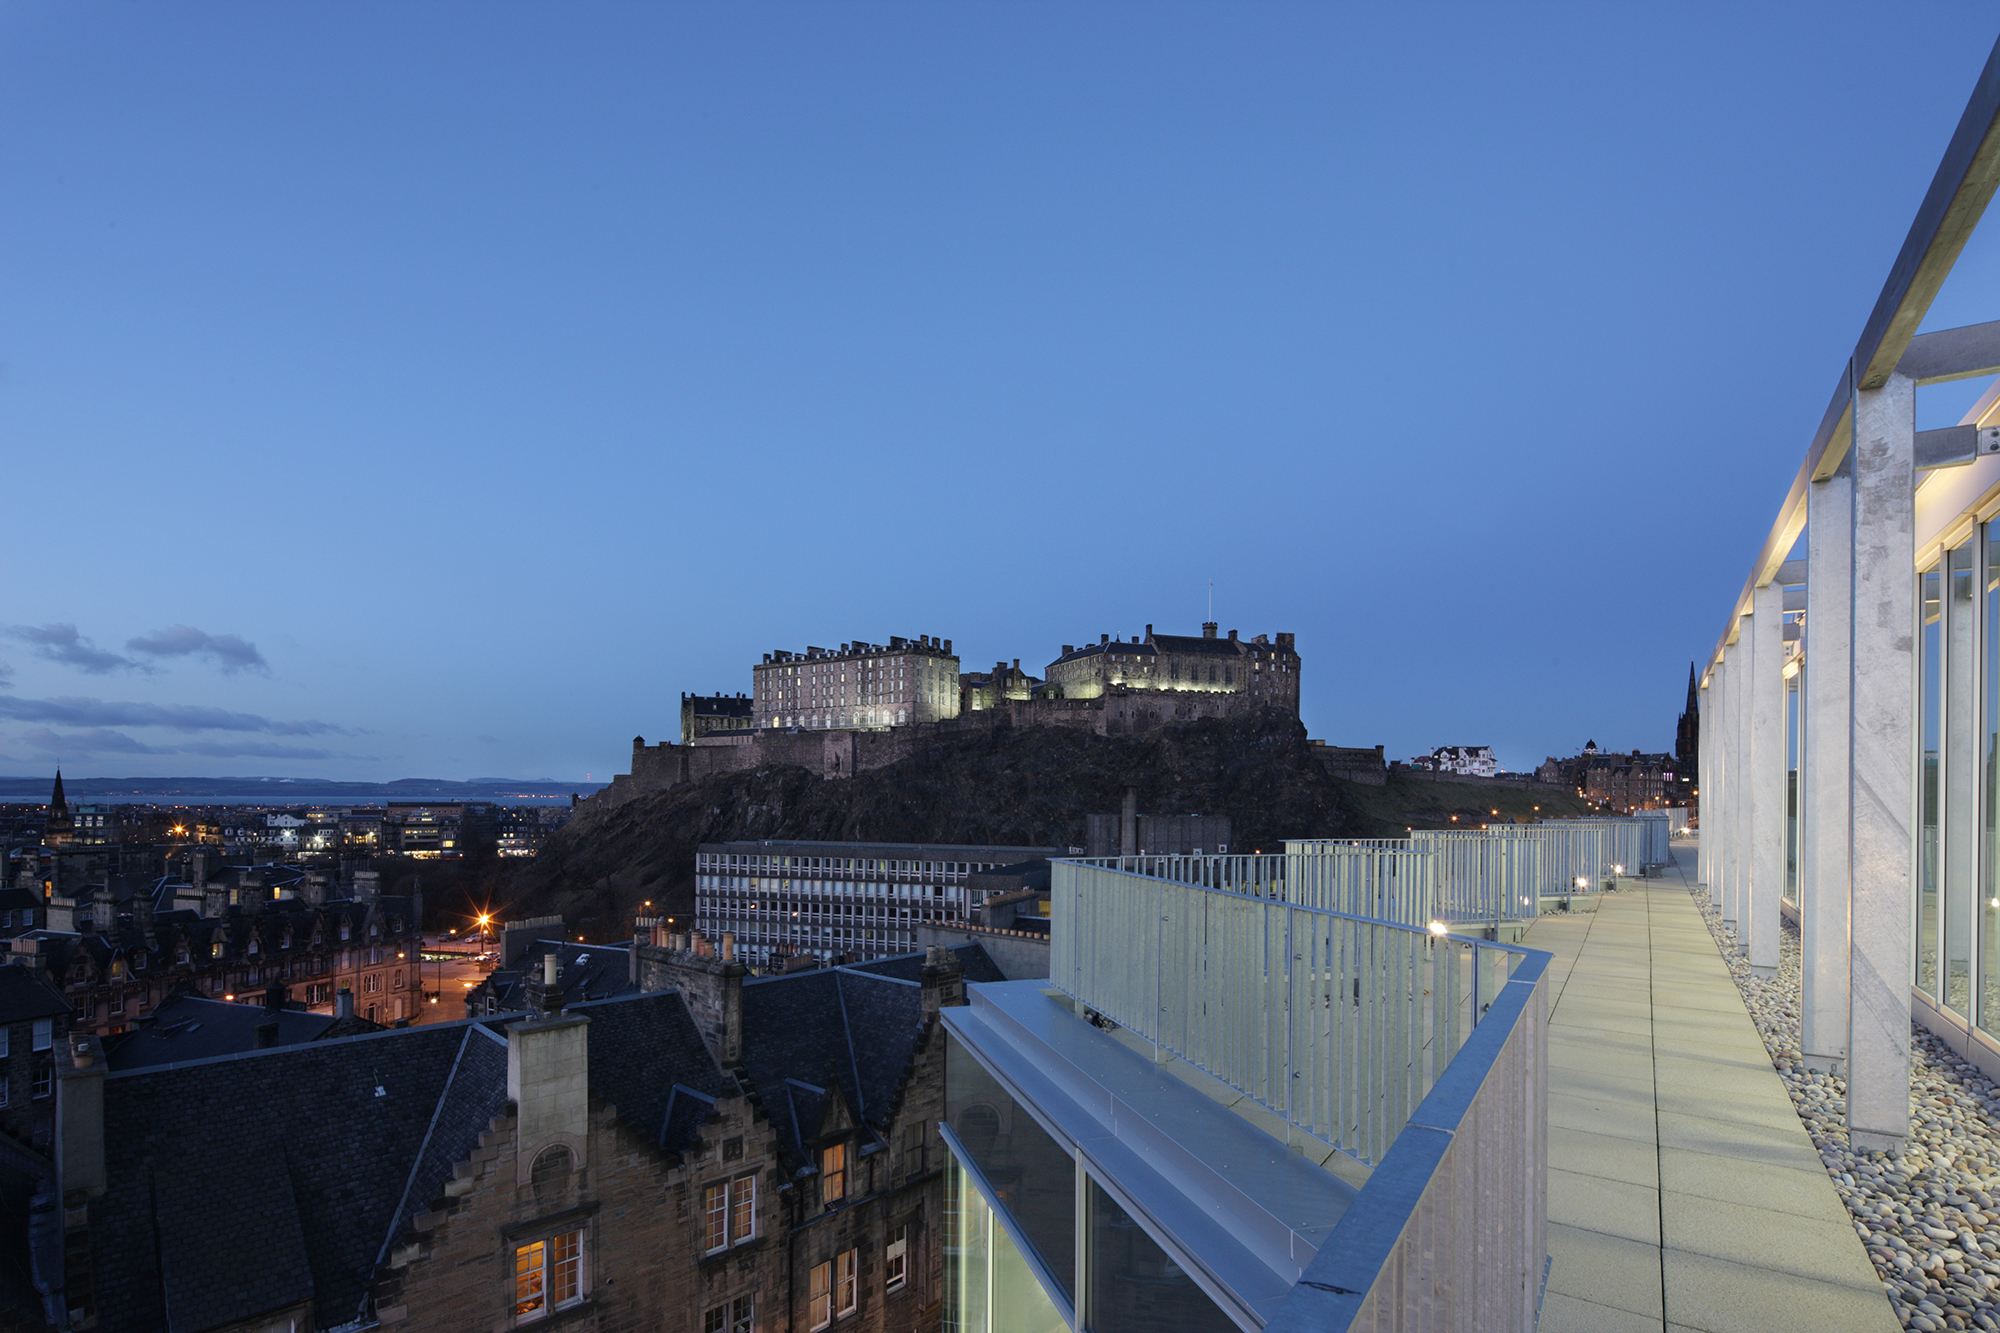 A view of Edinburgh castle | By McAteer Photo